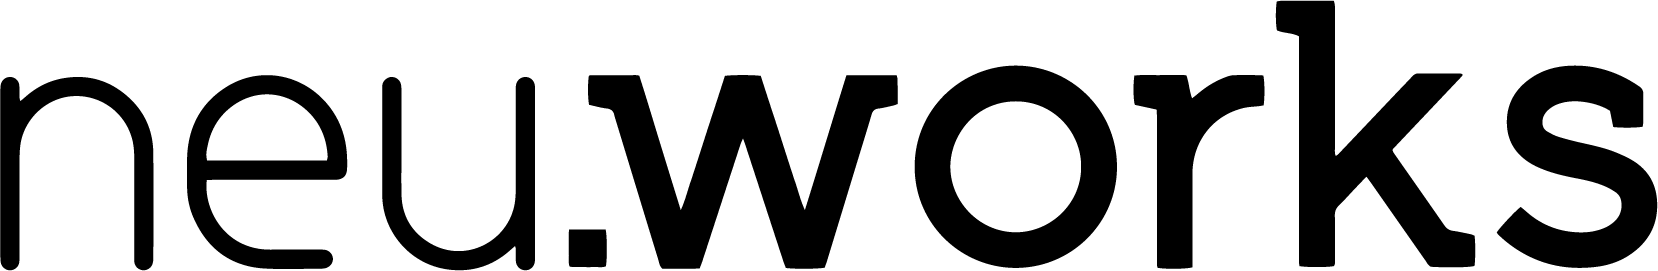 neu.works-logo-official-black.png